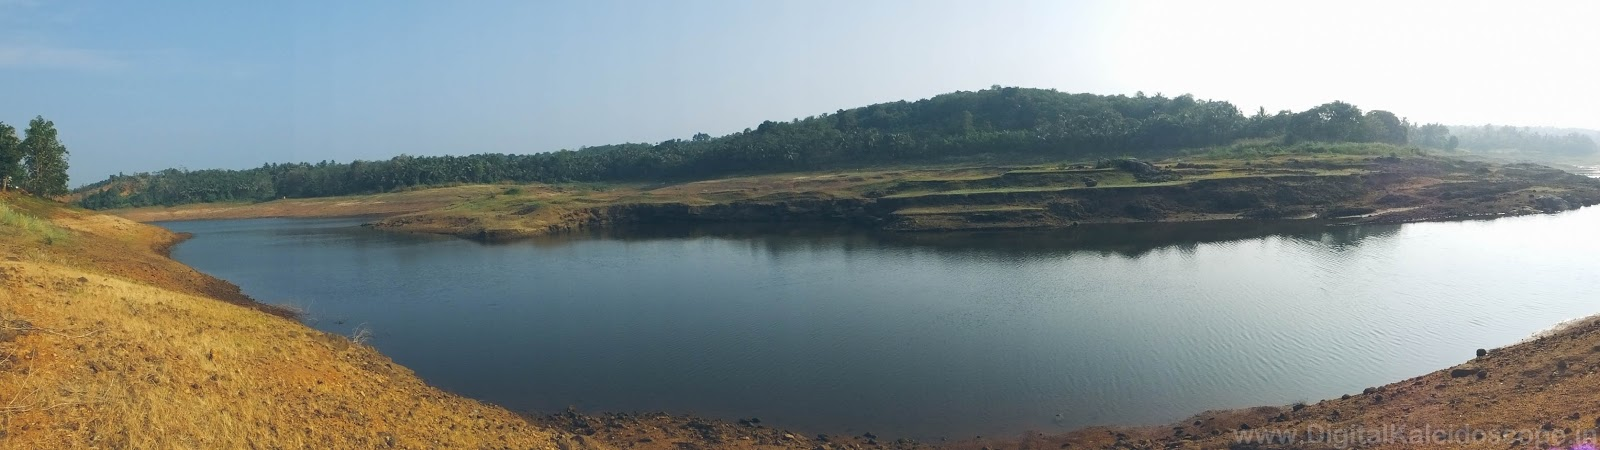 Poomala Lake